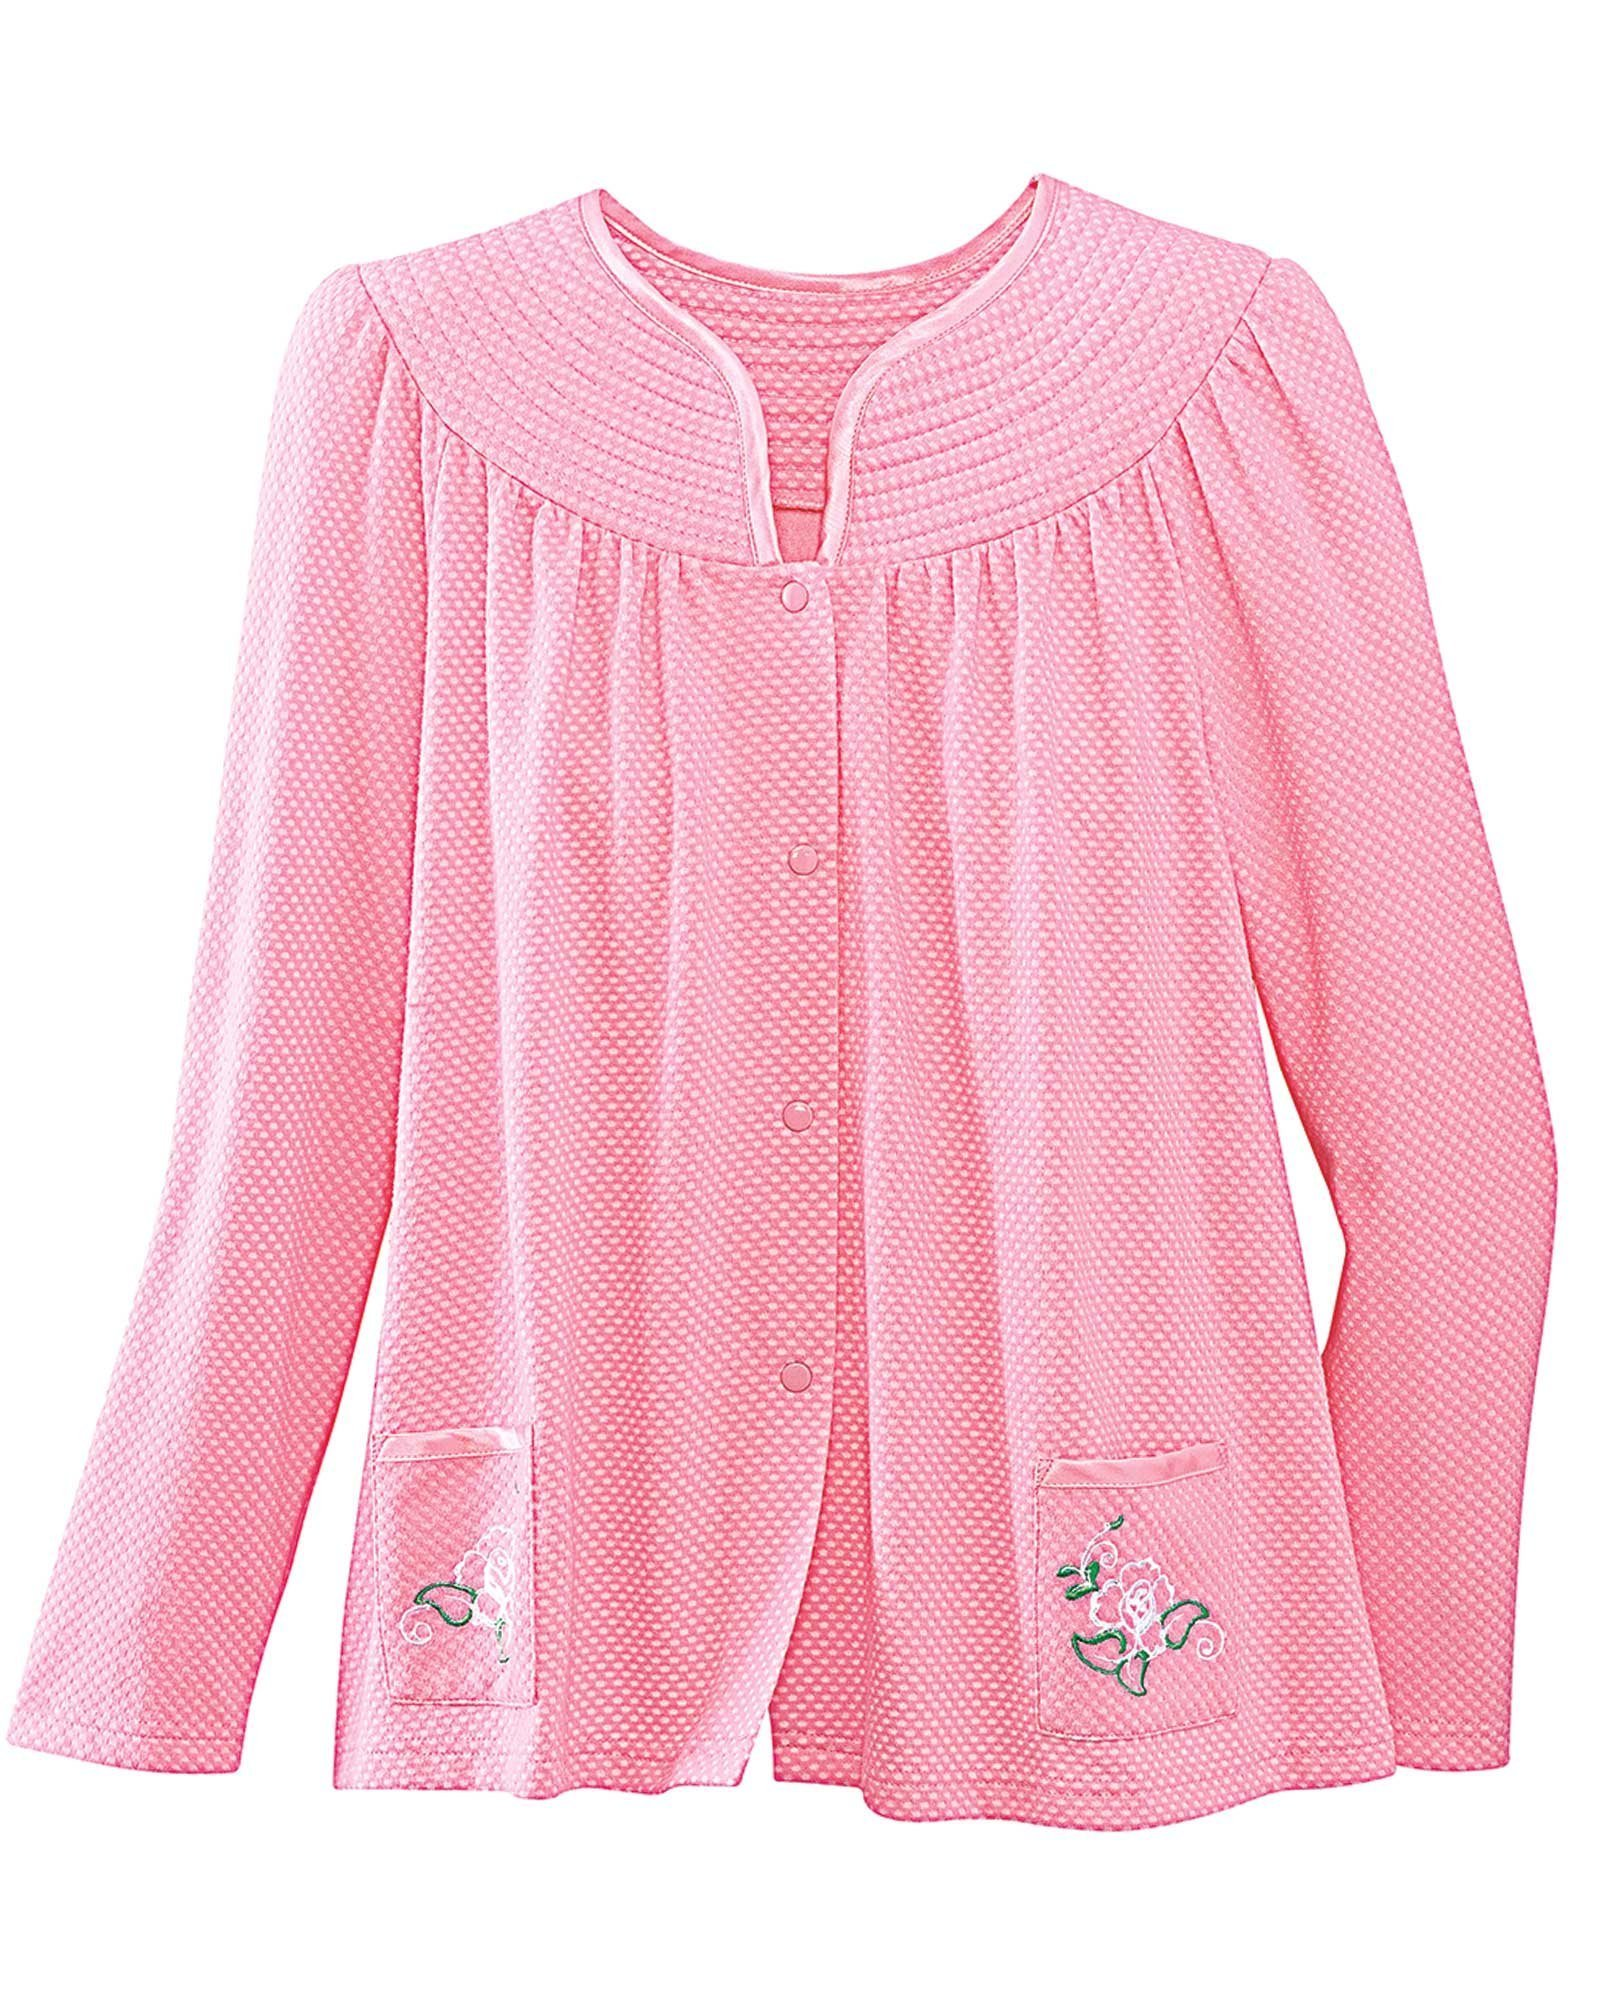 National Trapunto Yoke Bed Jacket, Rose, 1X by National